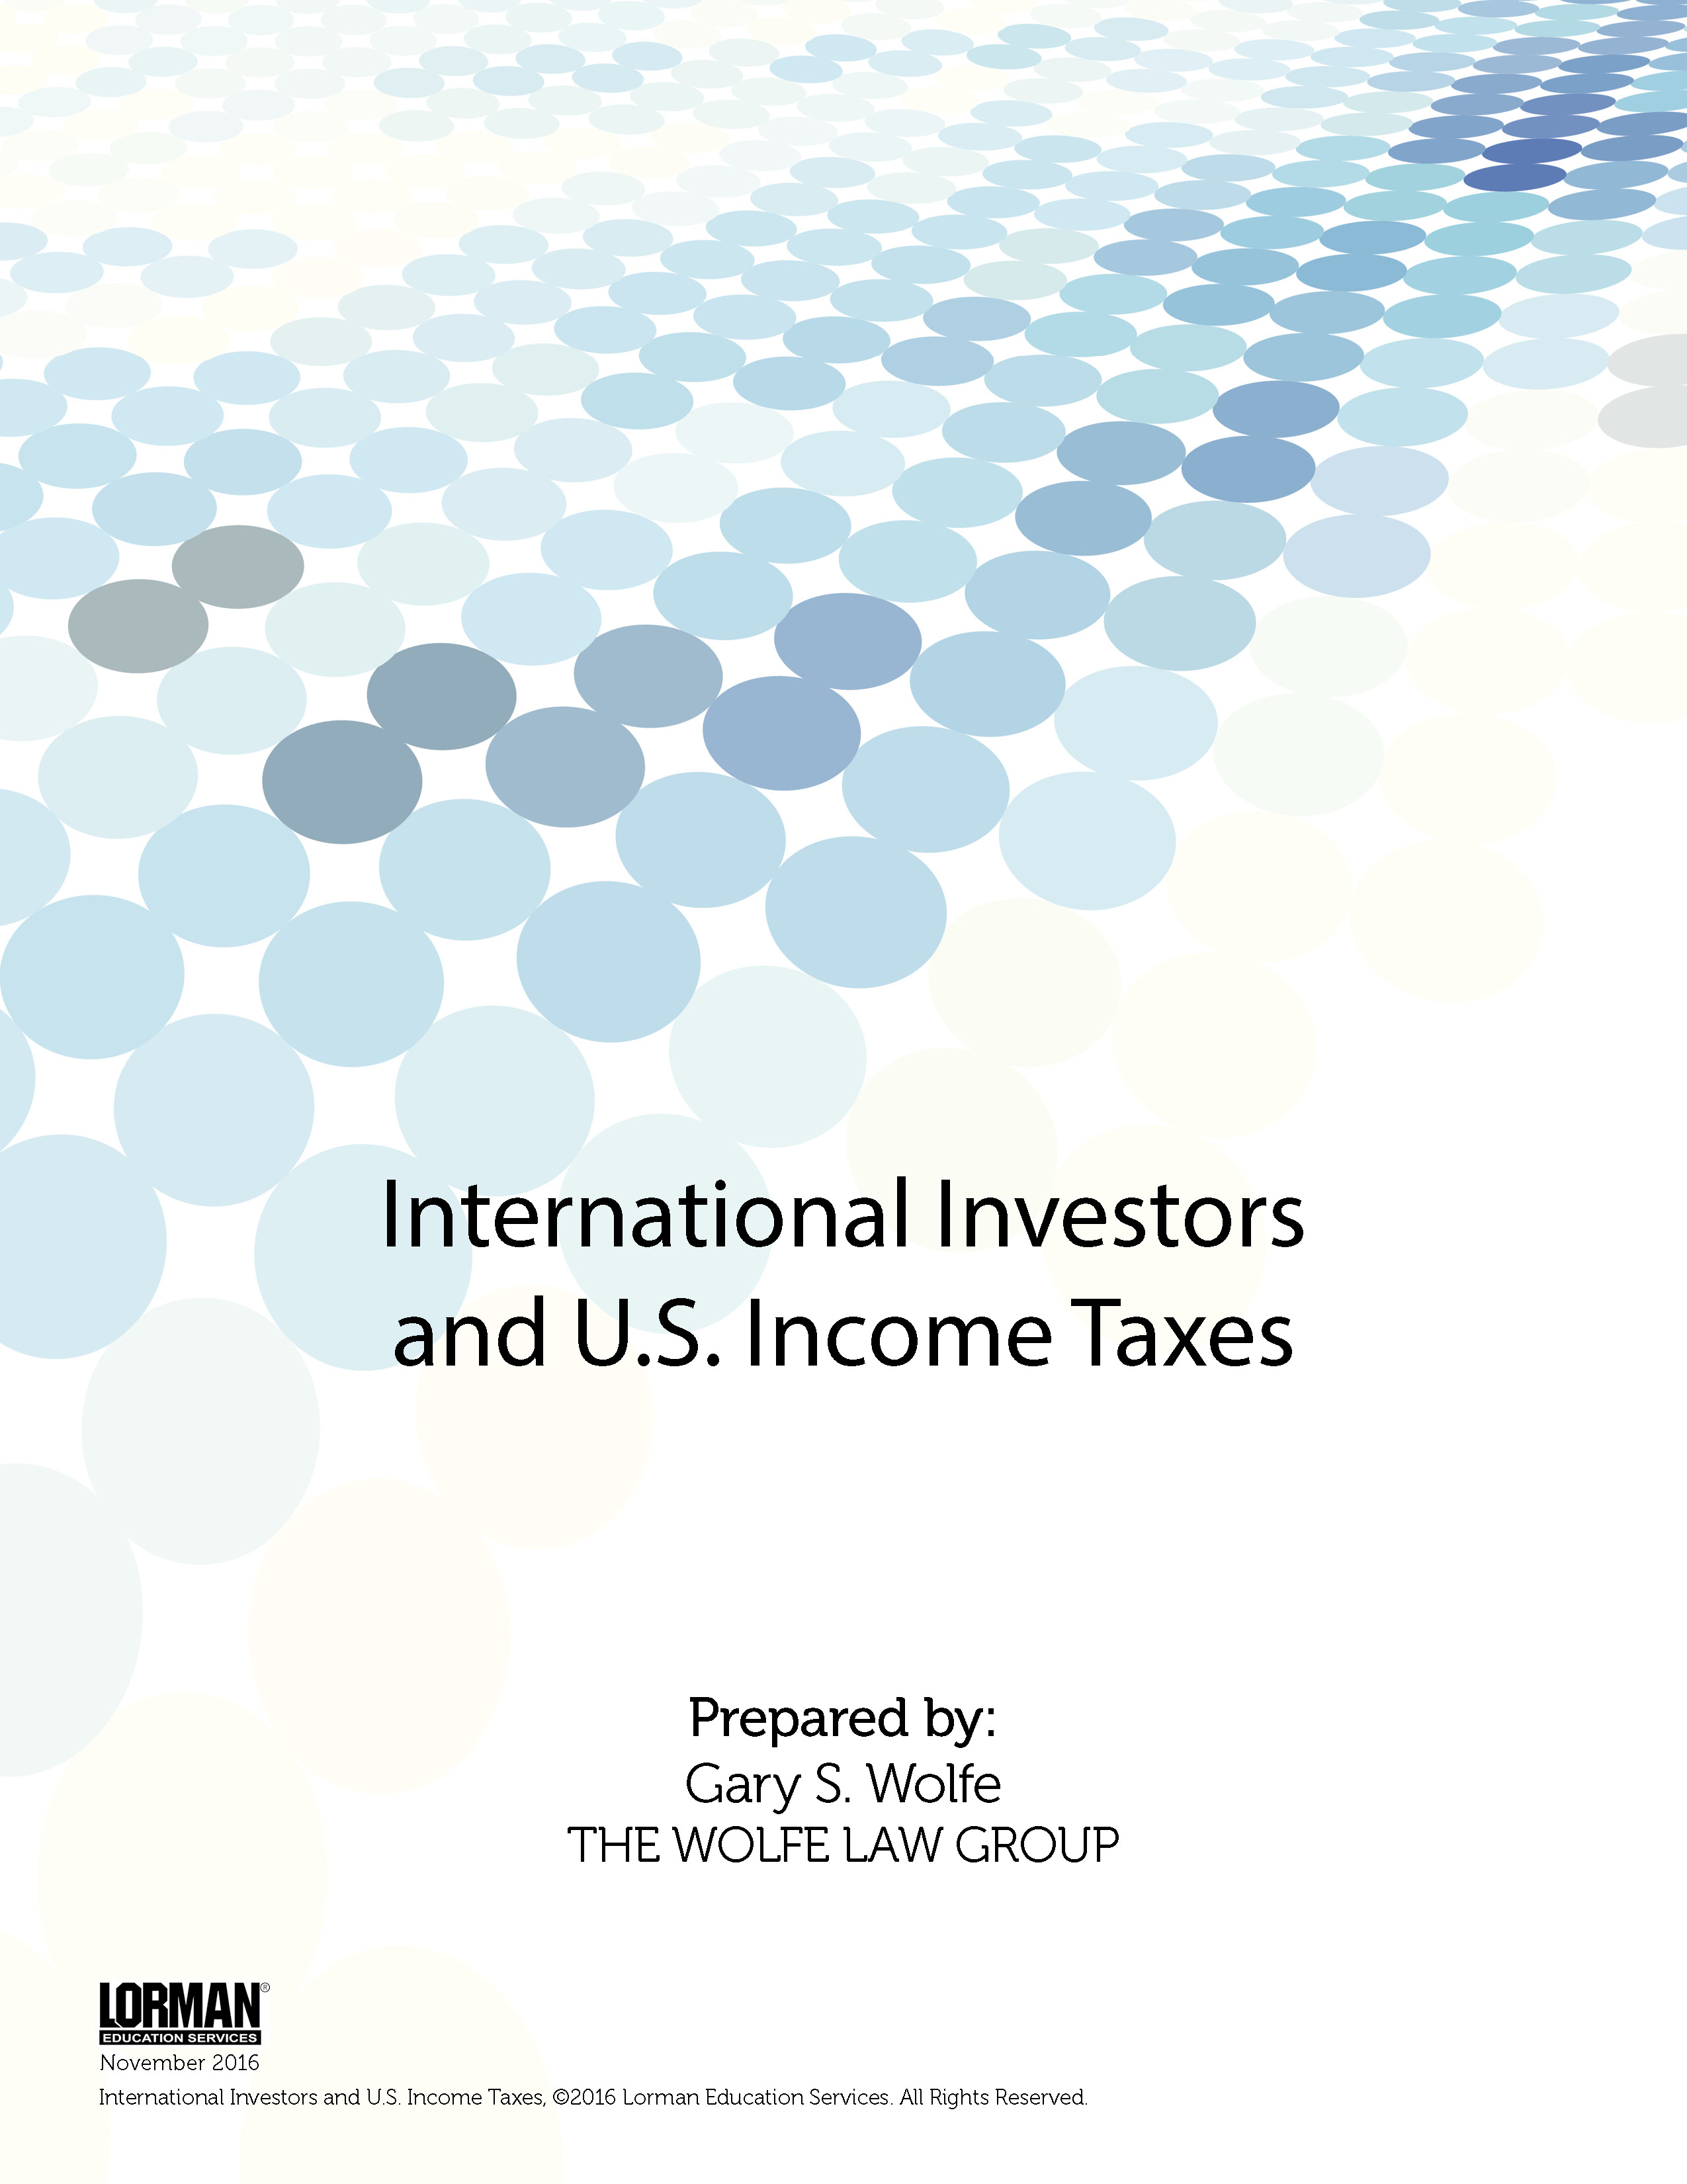 International Investors and U.S. Income Taxes